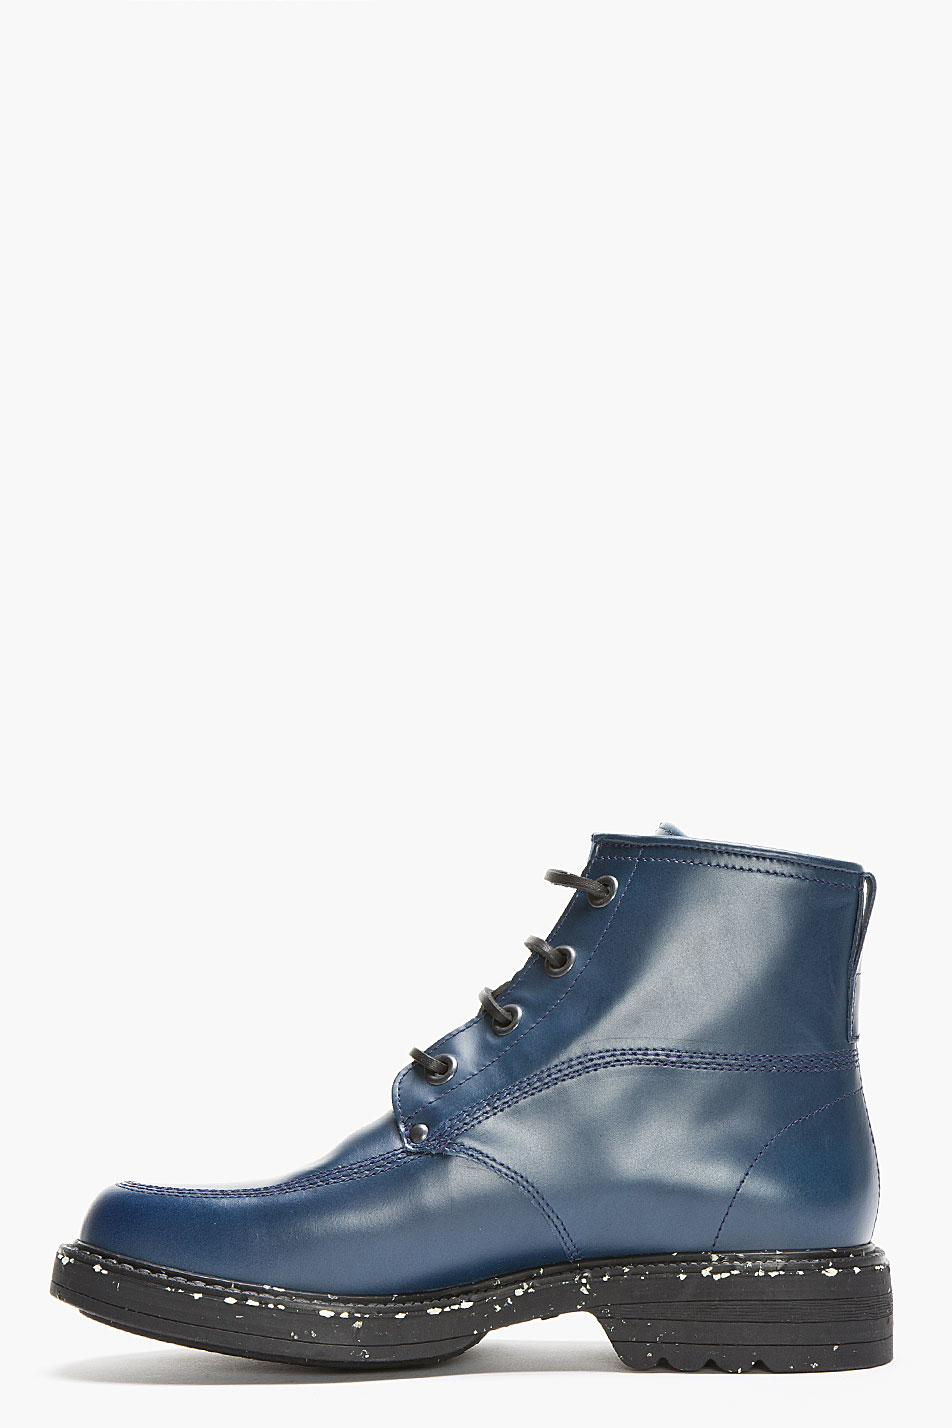 Kenzo Dark Teal Leather Speckled Ronnie Military Boots In